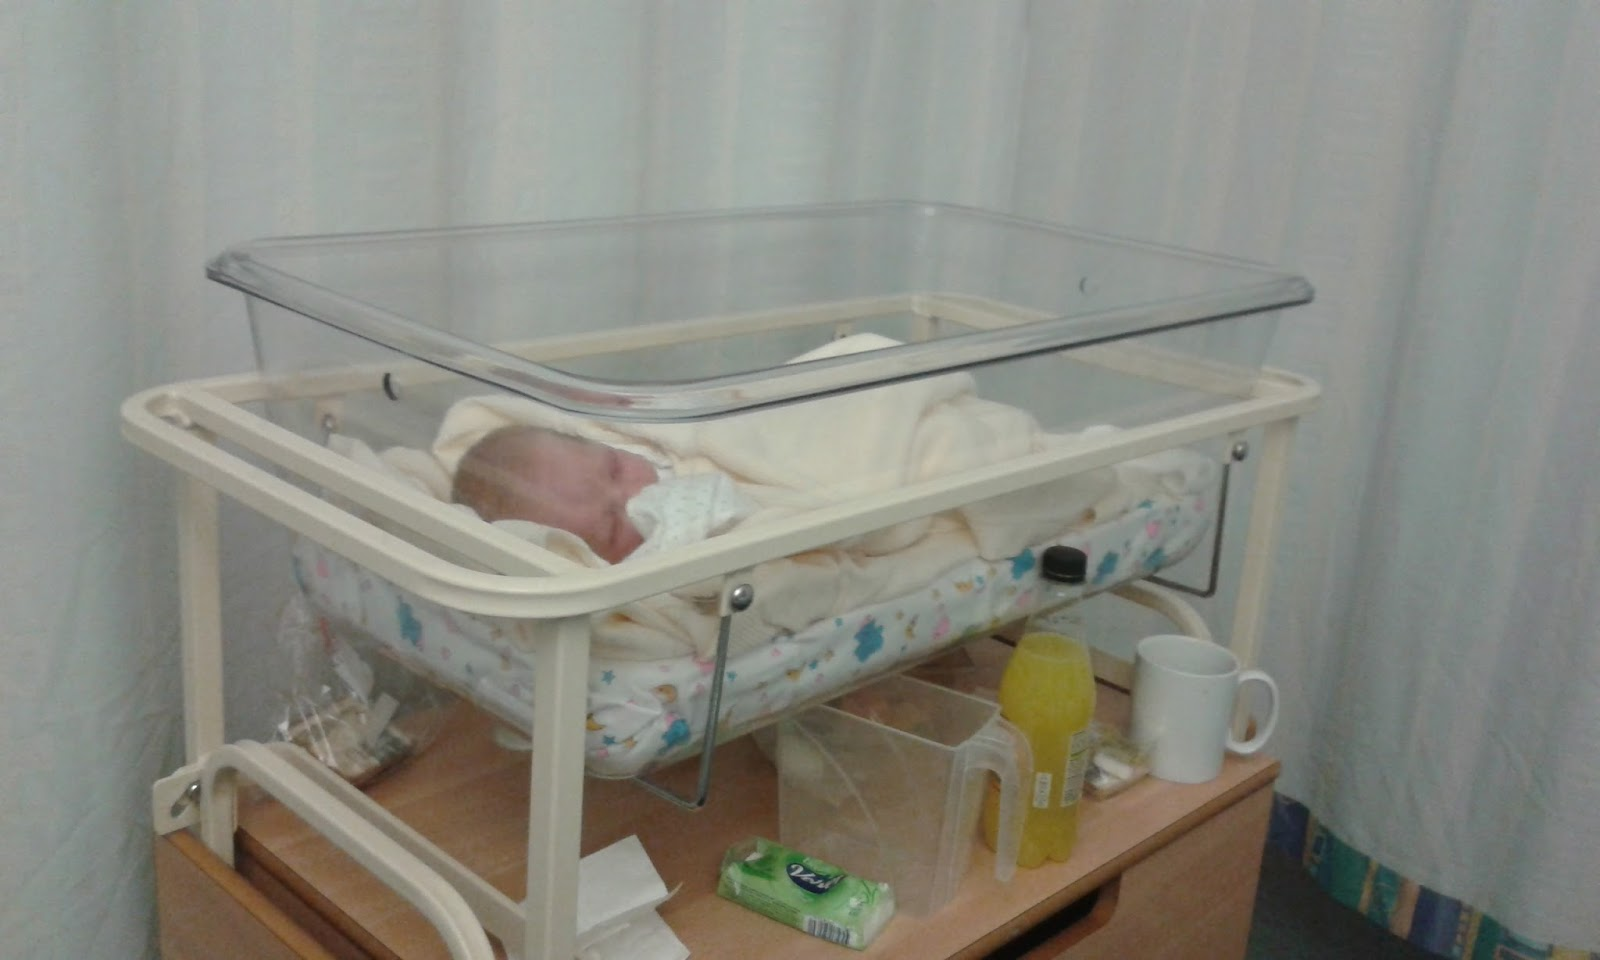 Blooming Fiction, lifestyle blog, My Birth Story : How Baby Jessica Had A Traumatic Entrance To The World